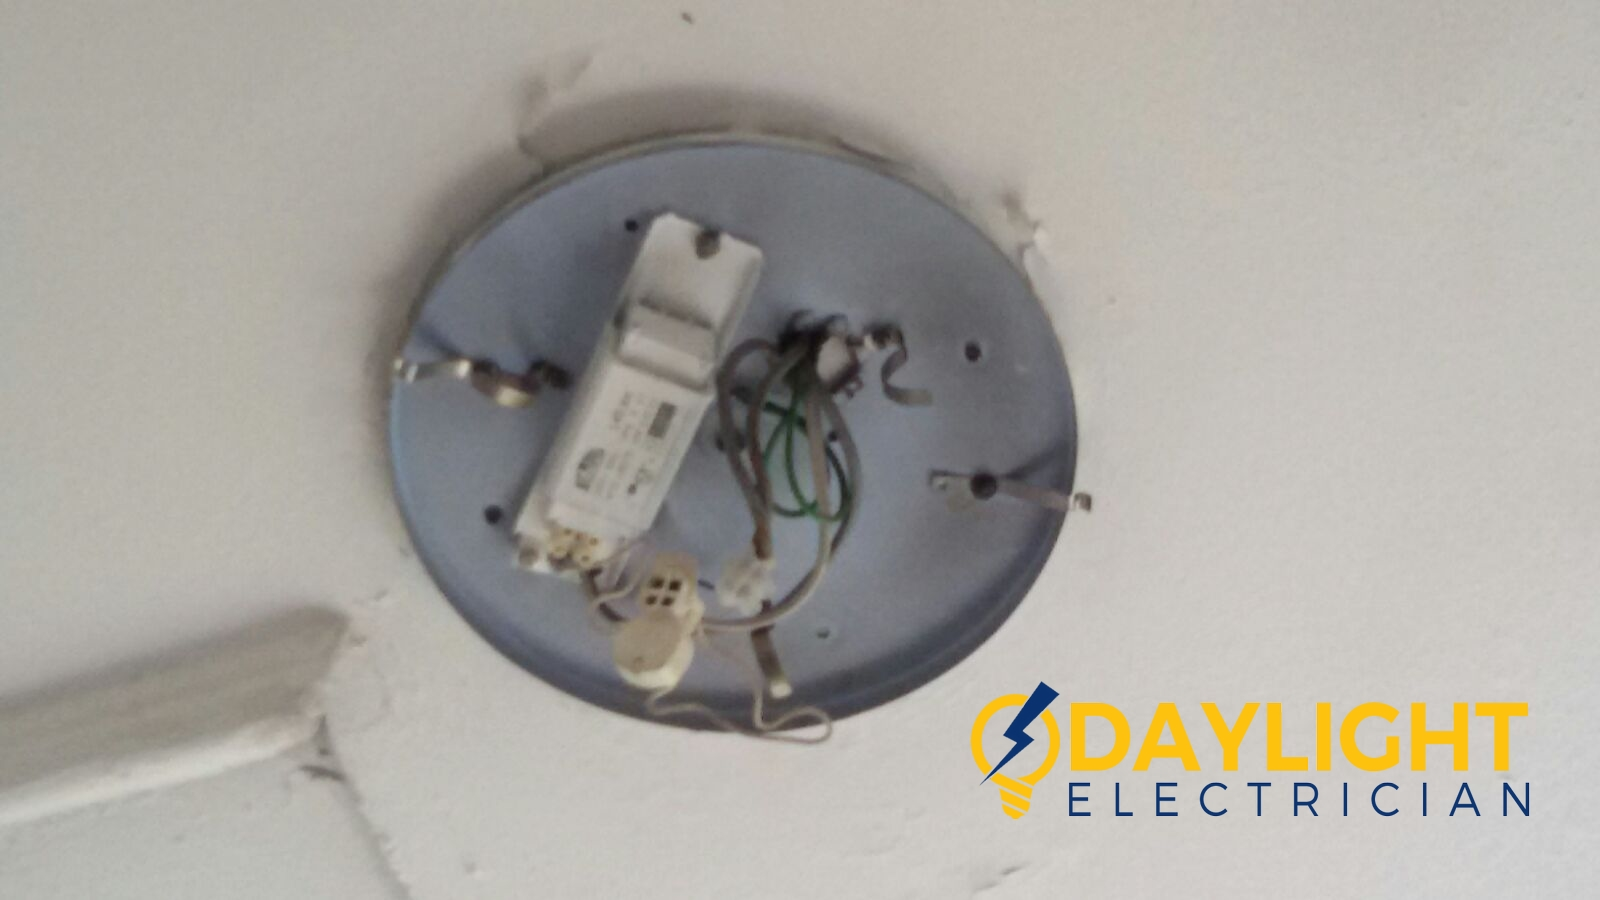 Electrician Singapore Price - Electrician Singapore